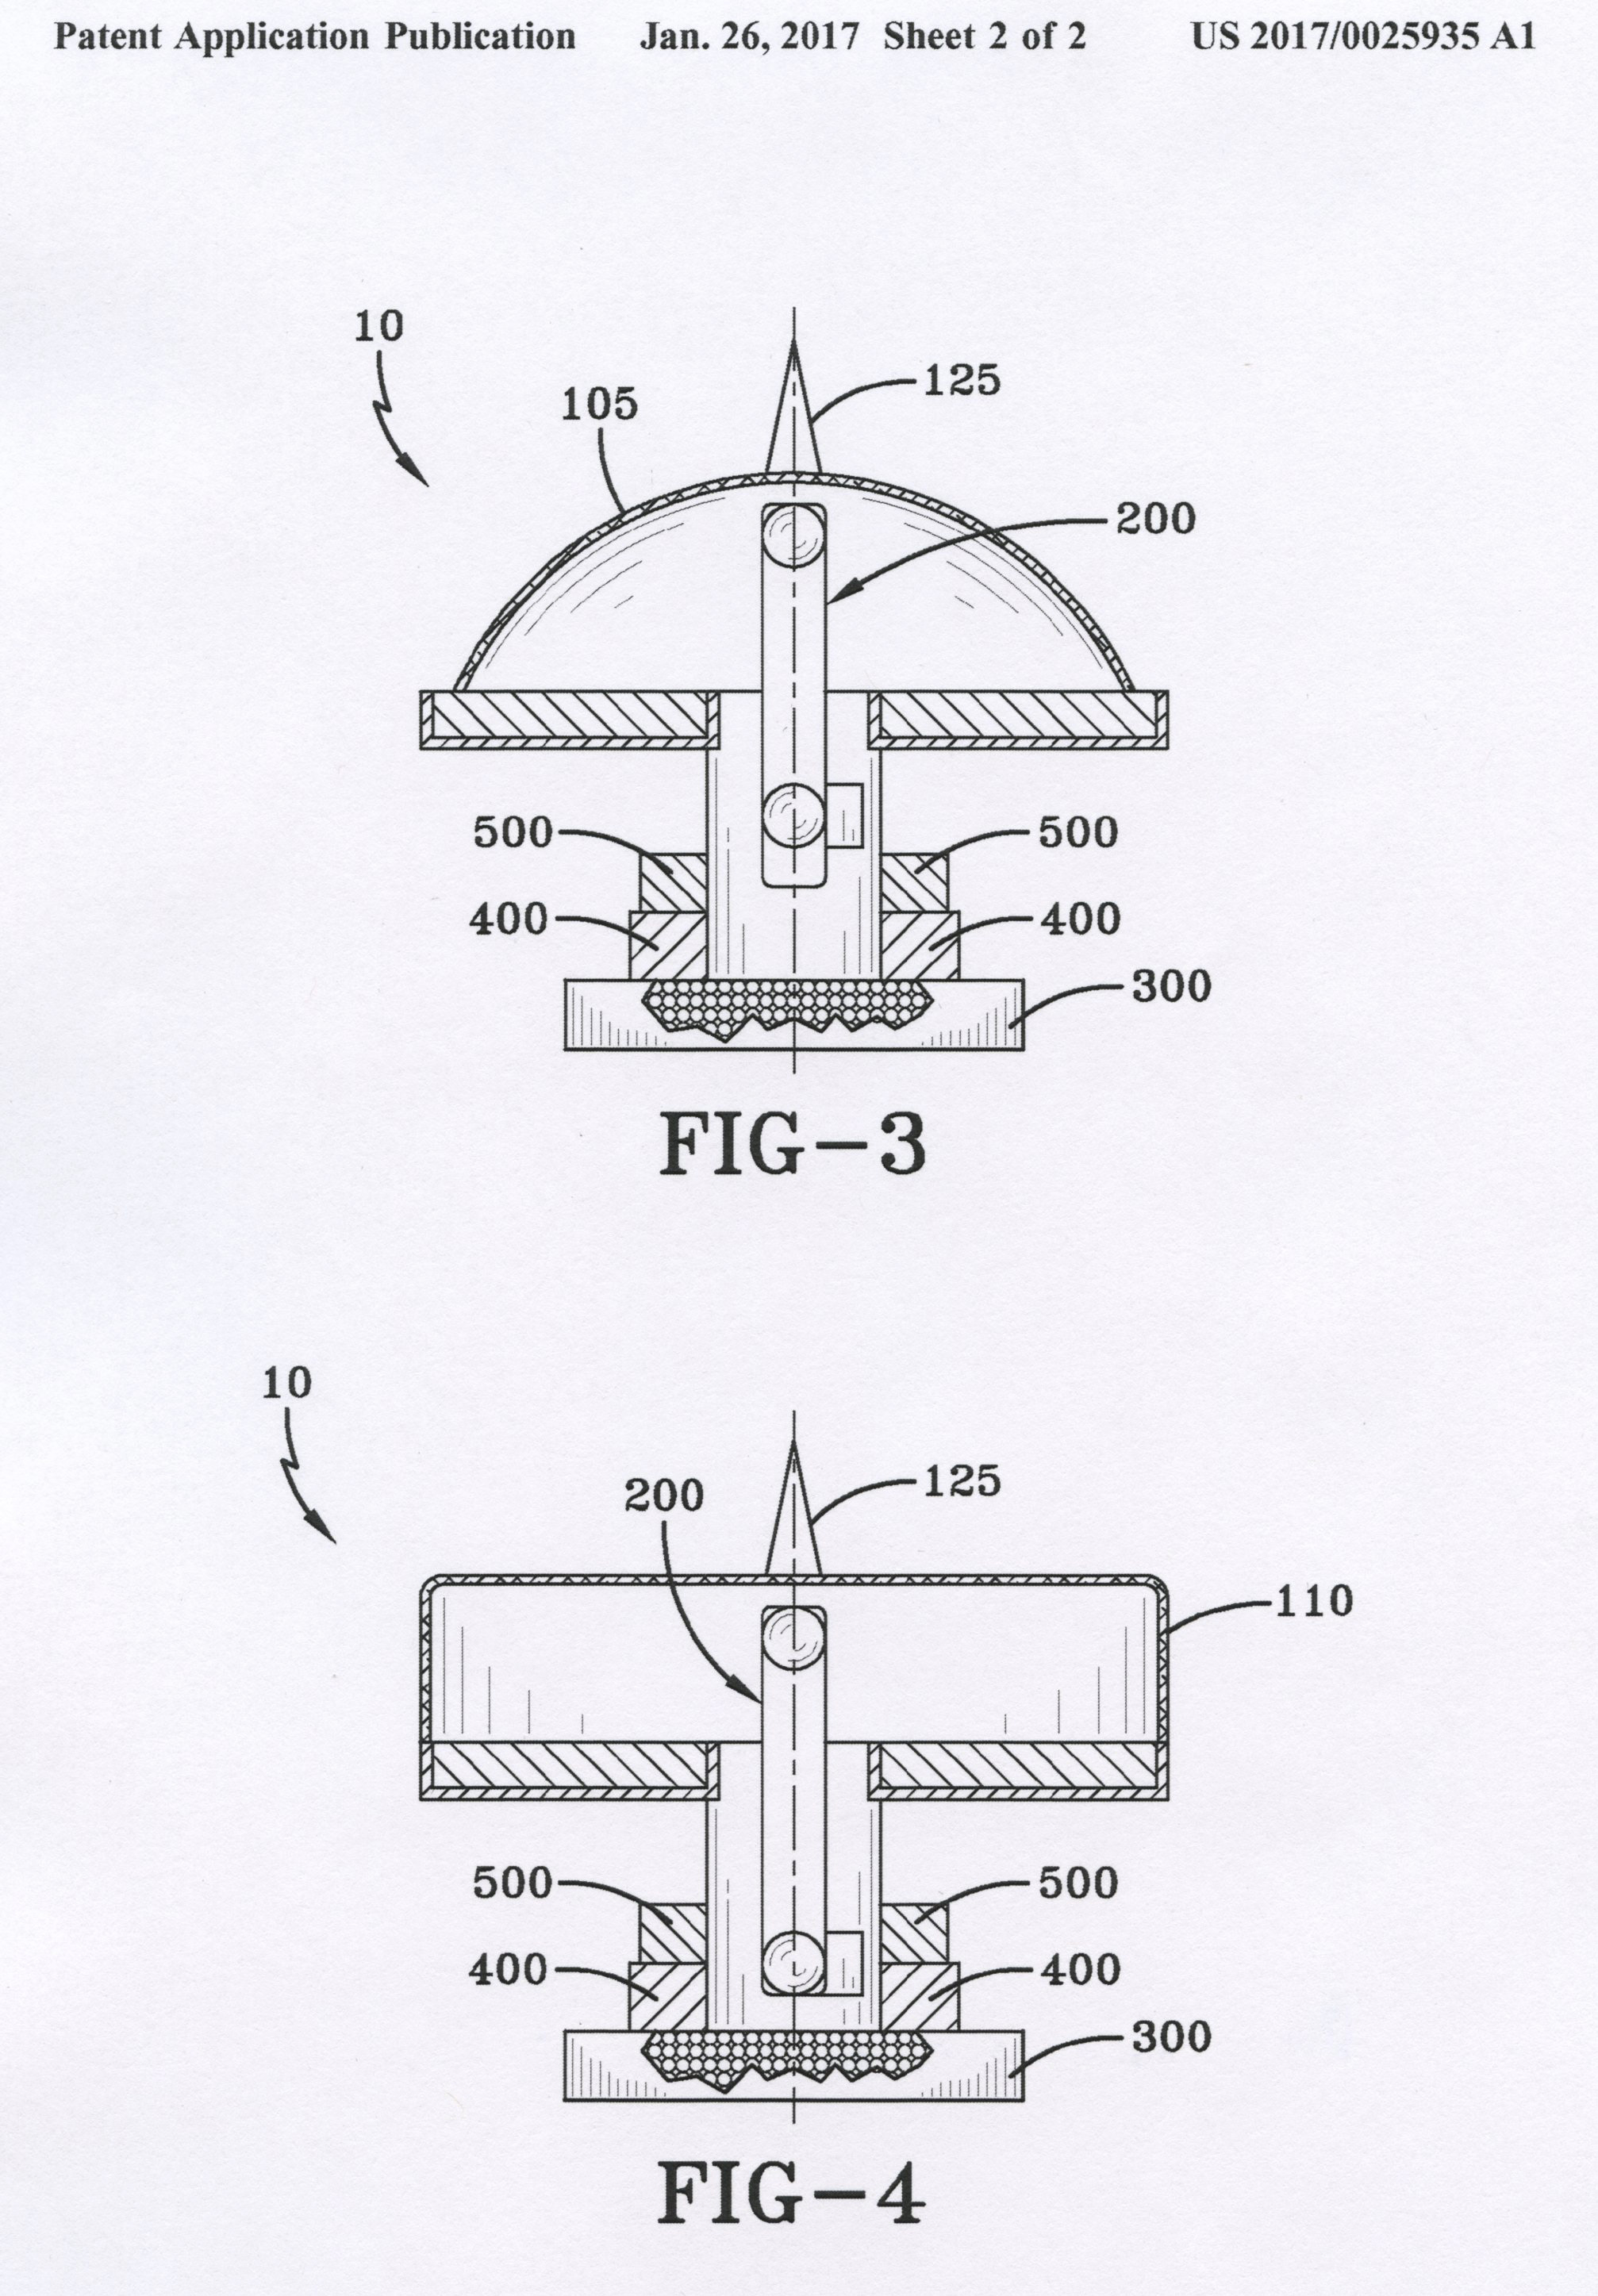 Is This U.S. 2017 Patent to Deflect Asteroids, Nuclear